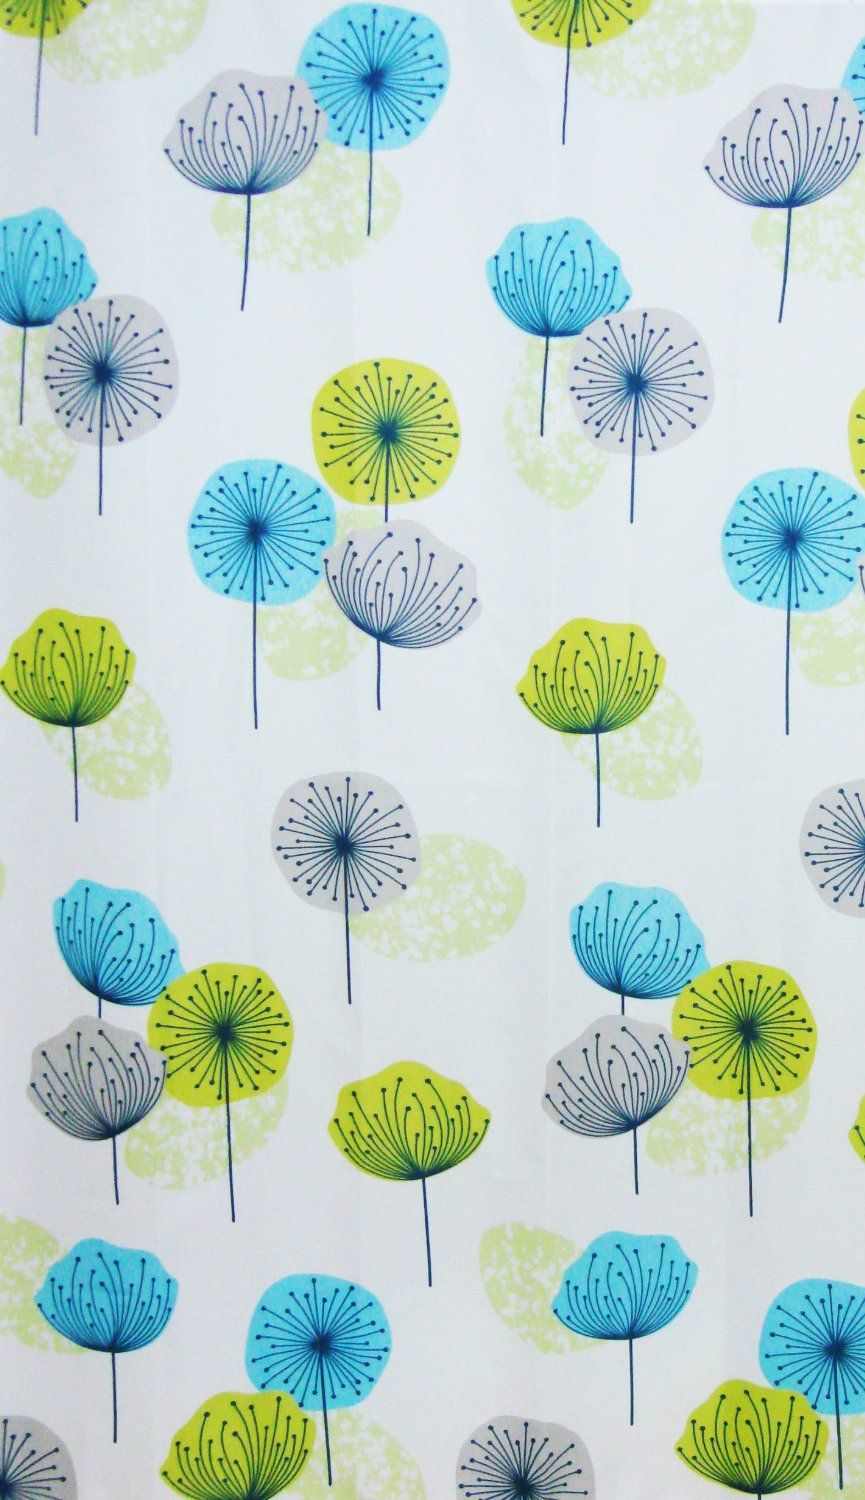 Fabric Bathroom Shower Curtain Dandelion Lime Green Blue 180 X Cm With Hooks Hallways Co Uk Kitchen Home